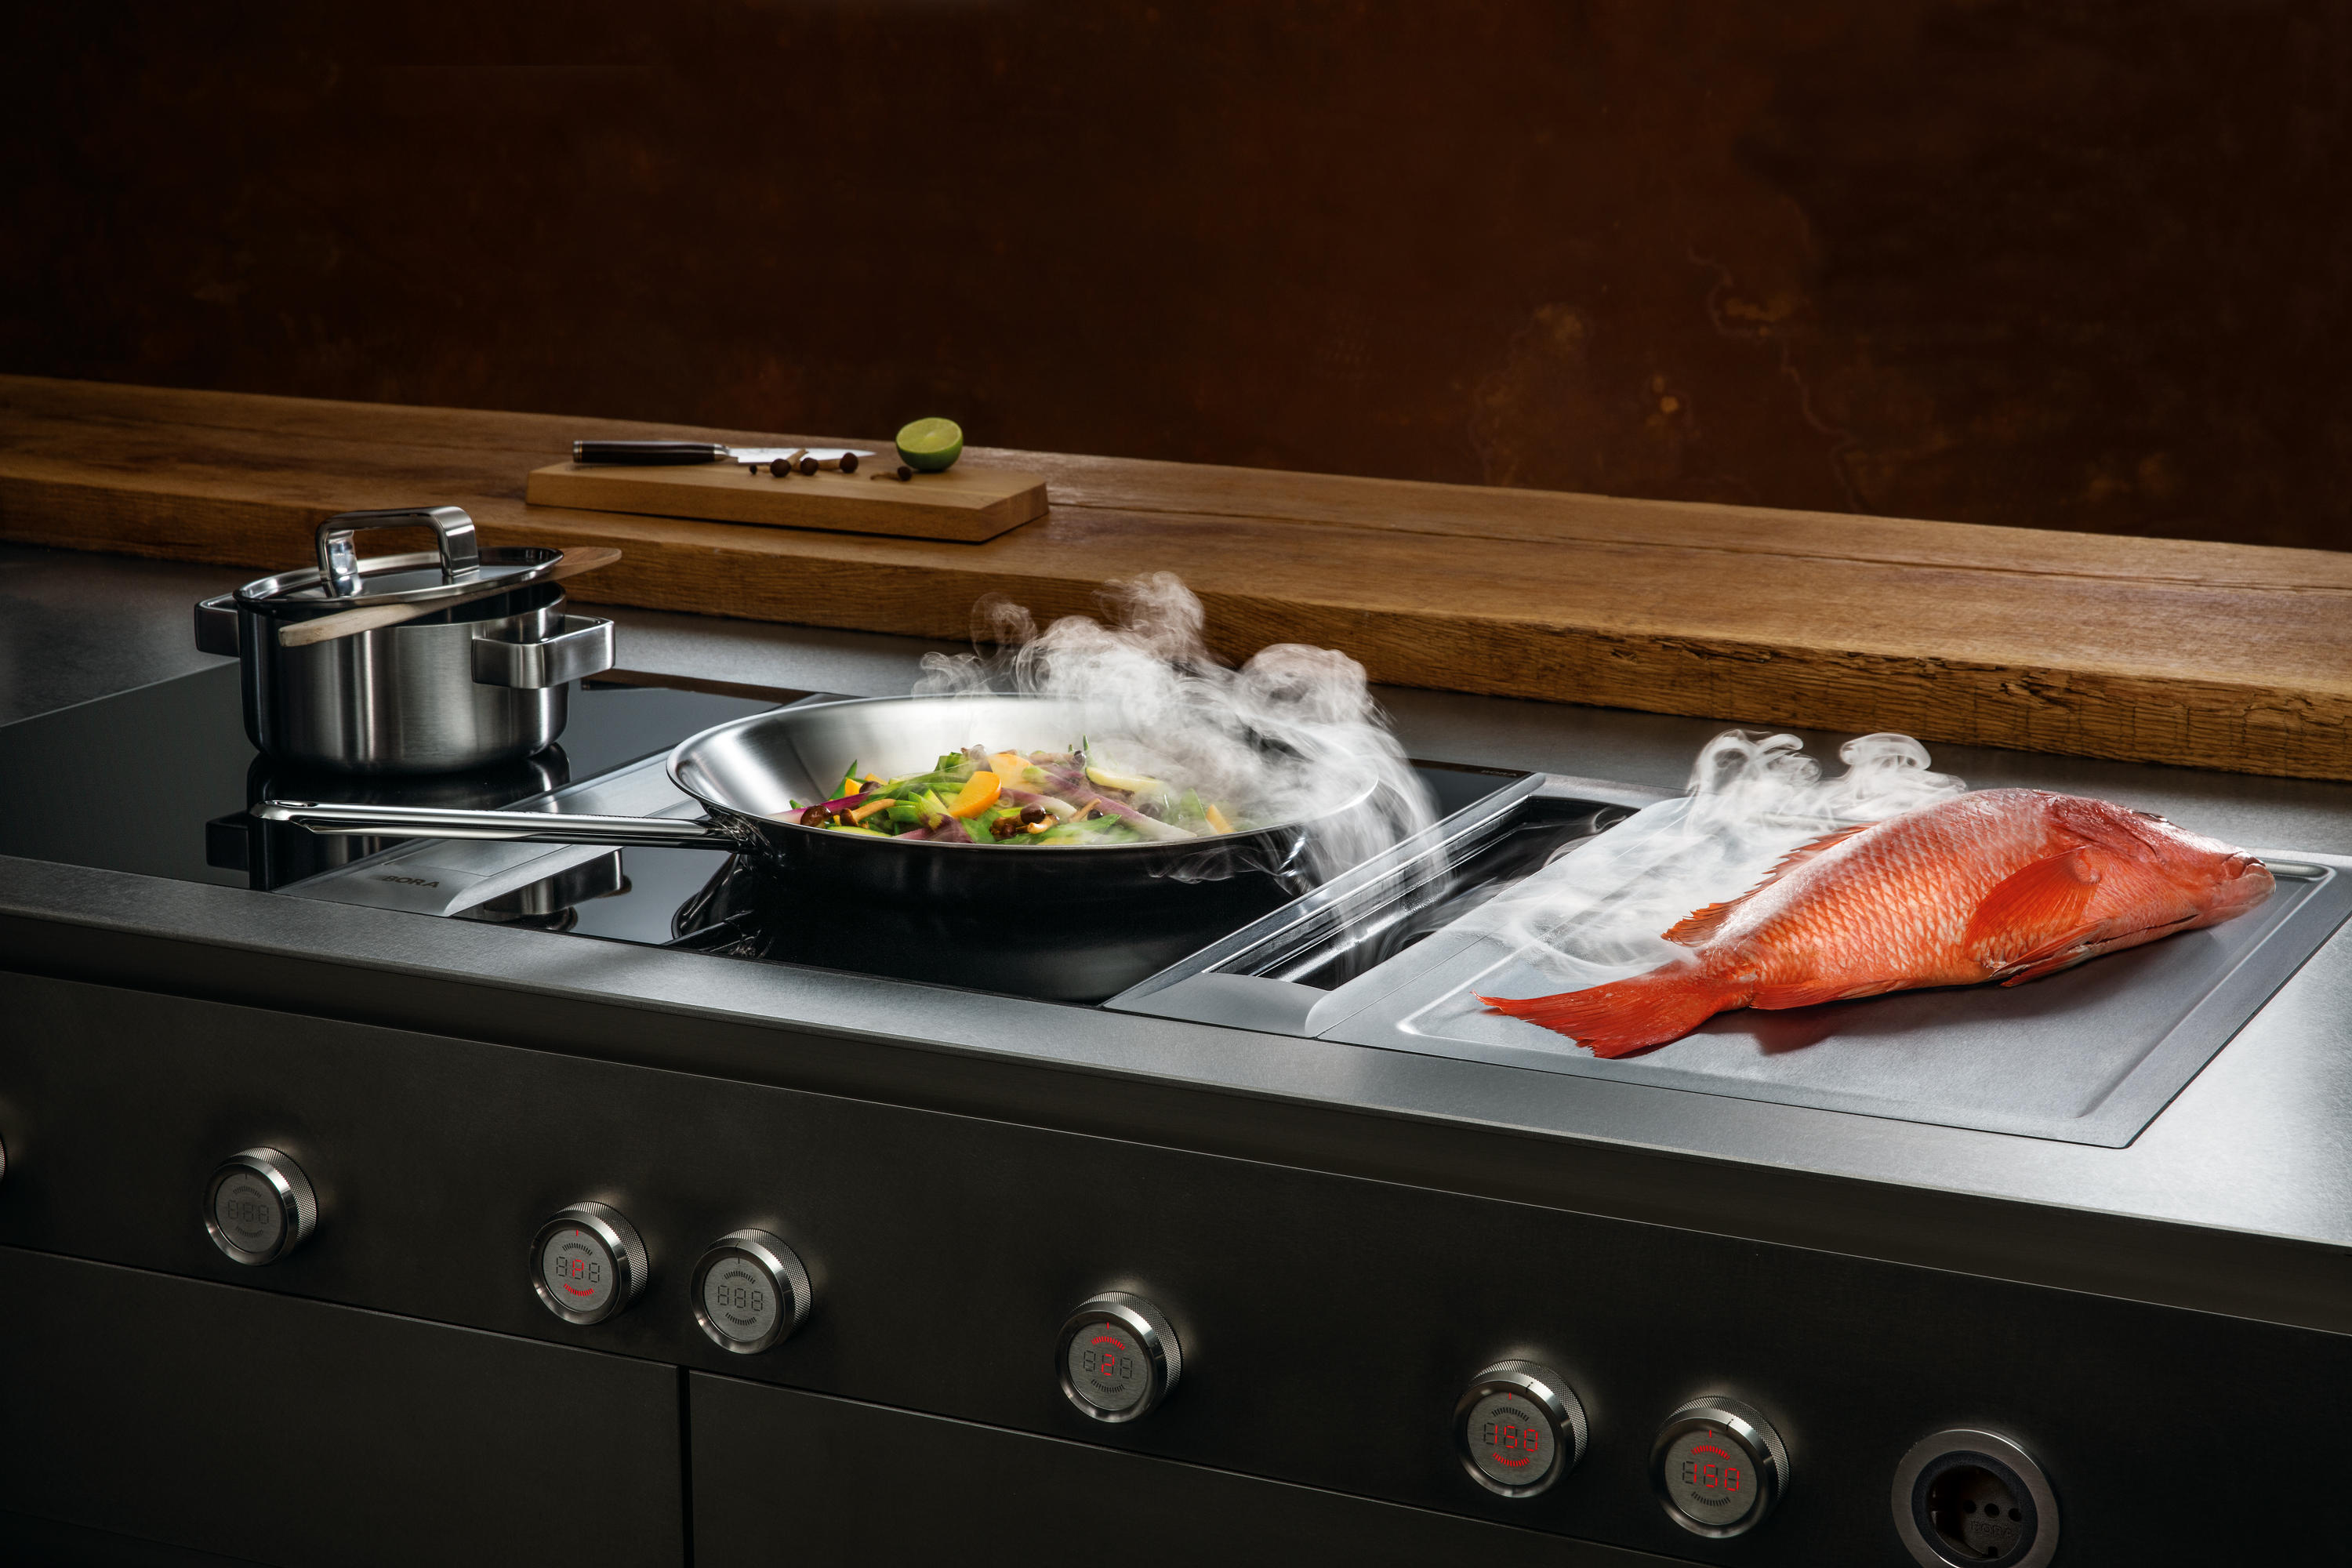 Küche Bora System Pkas Cooktop Extractor System Extractors From Bora